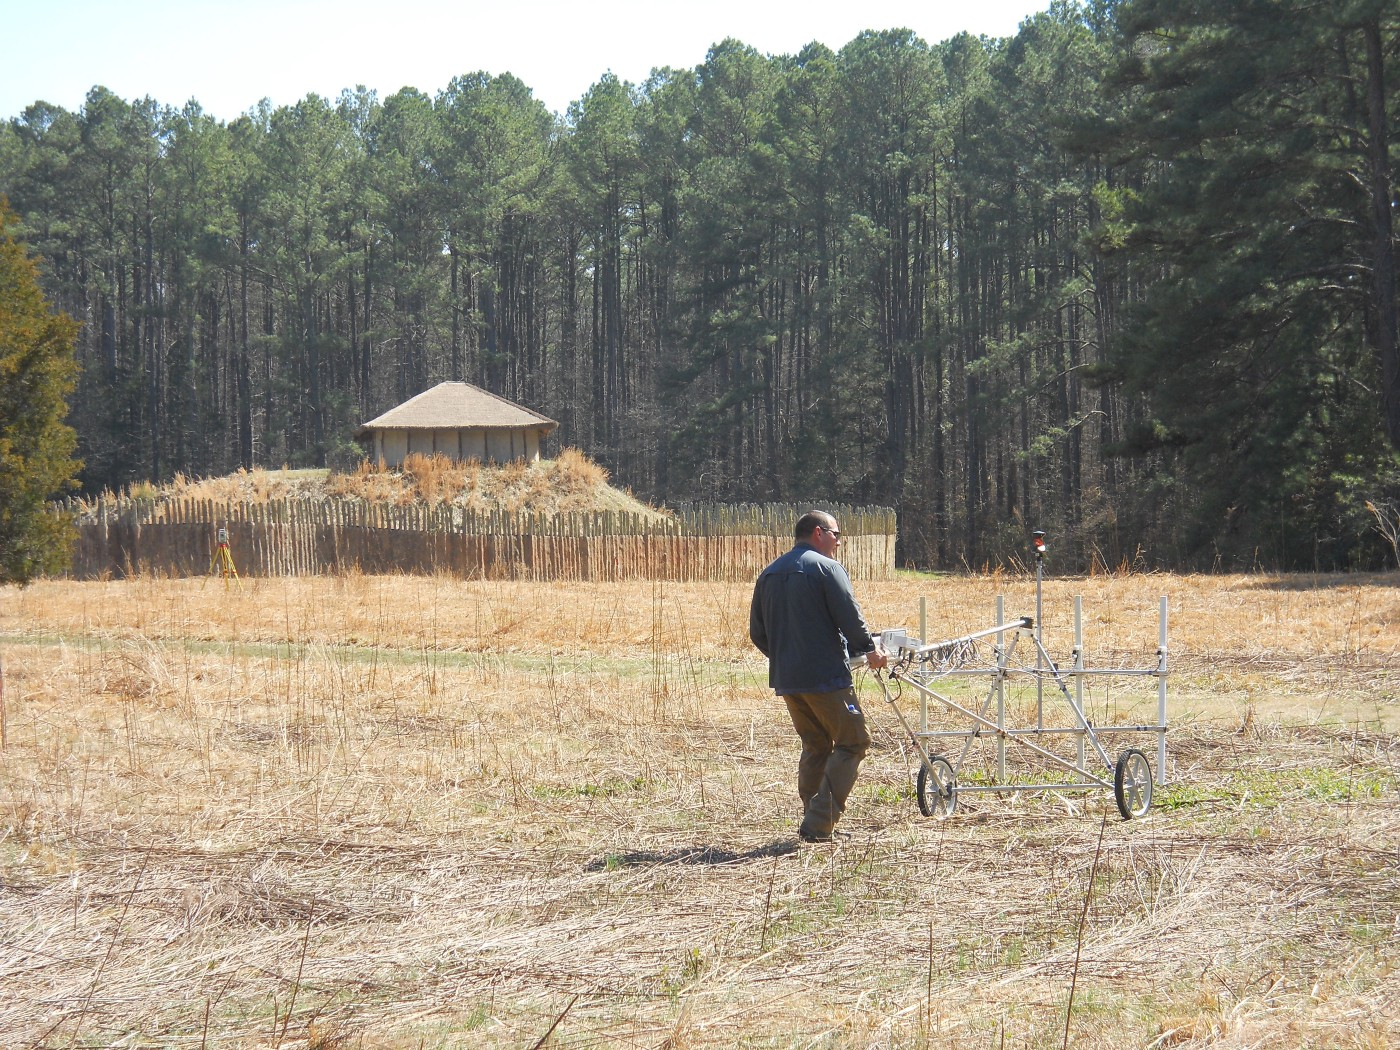 Dr. Chet Walker is operating magnetic survey equipment across the prairie with the mound at Town Creek Indian Mound visable.